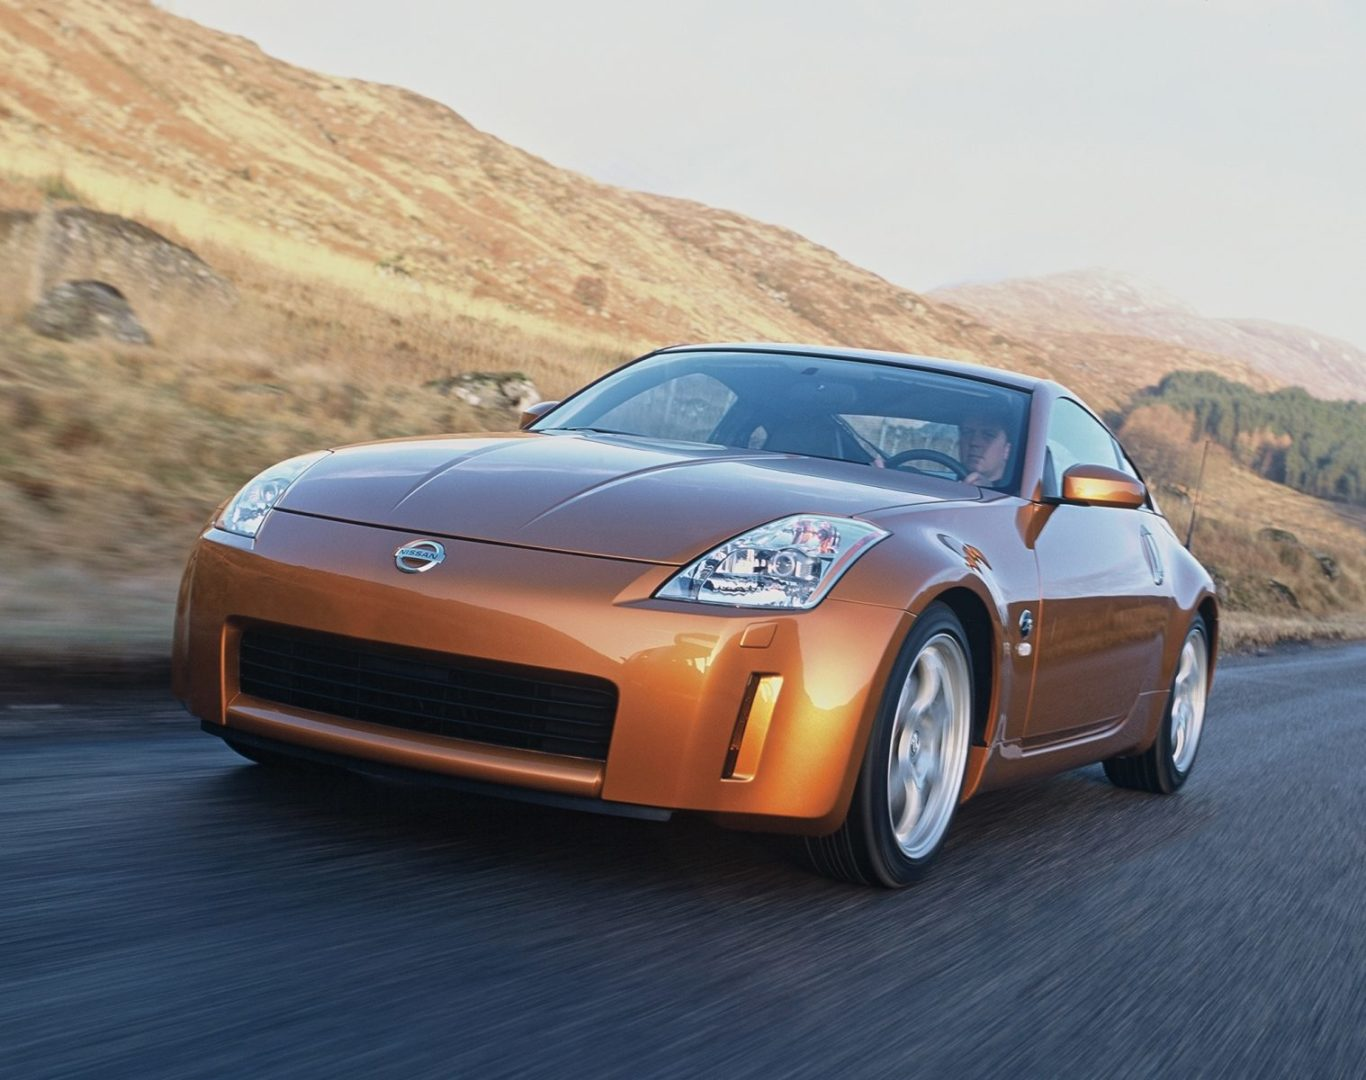 The Nissan 350Z reinvented the Z badge